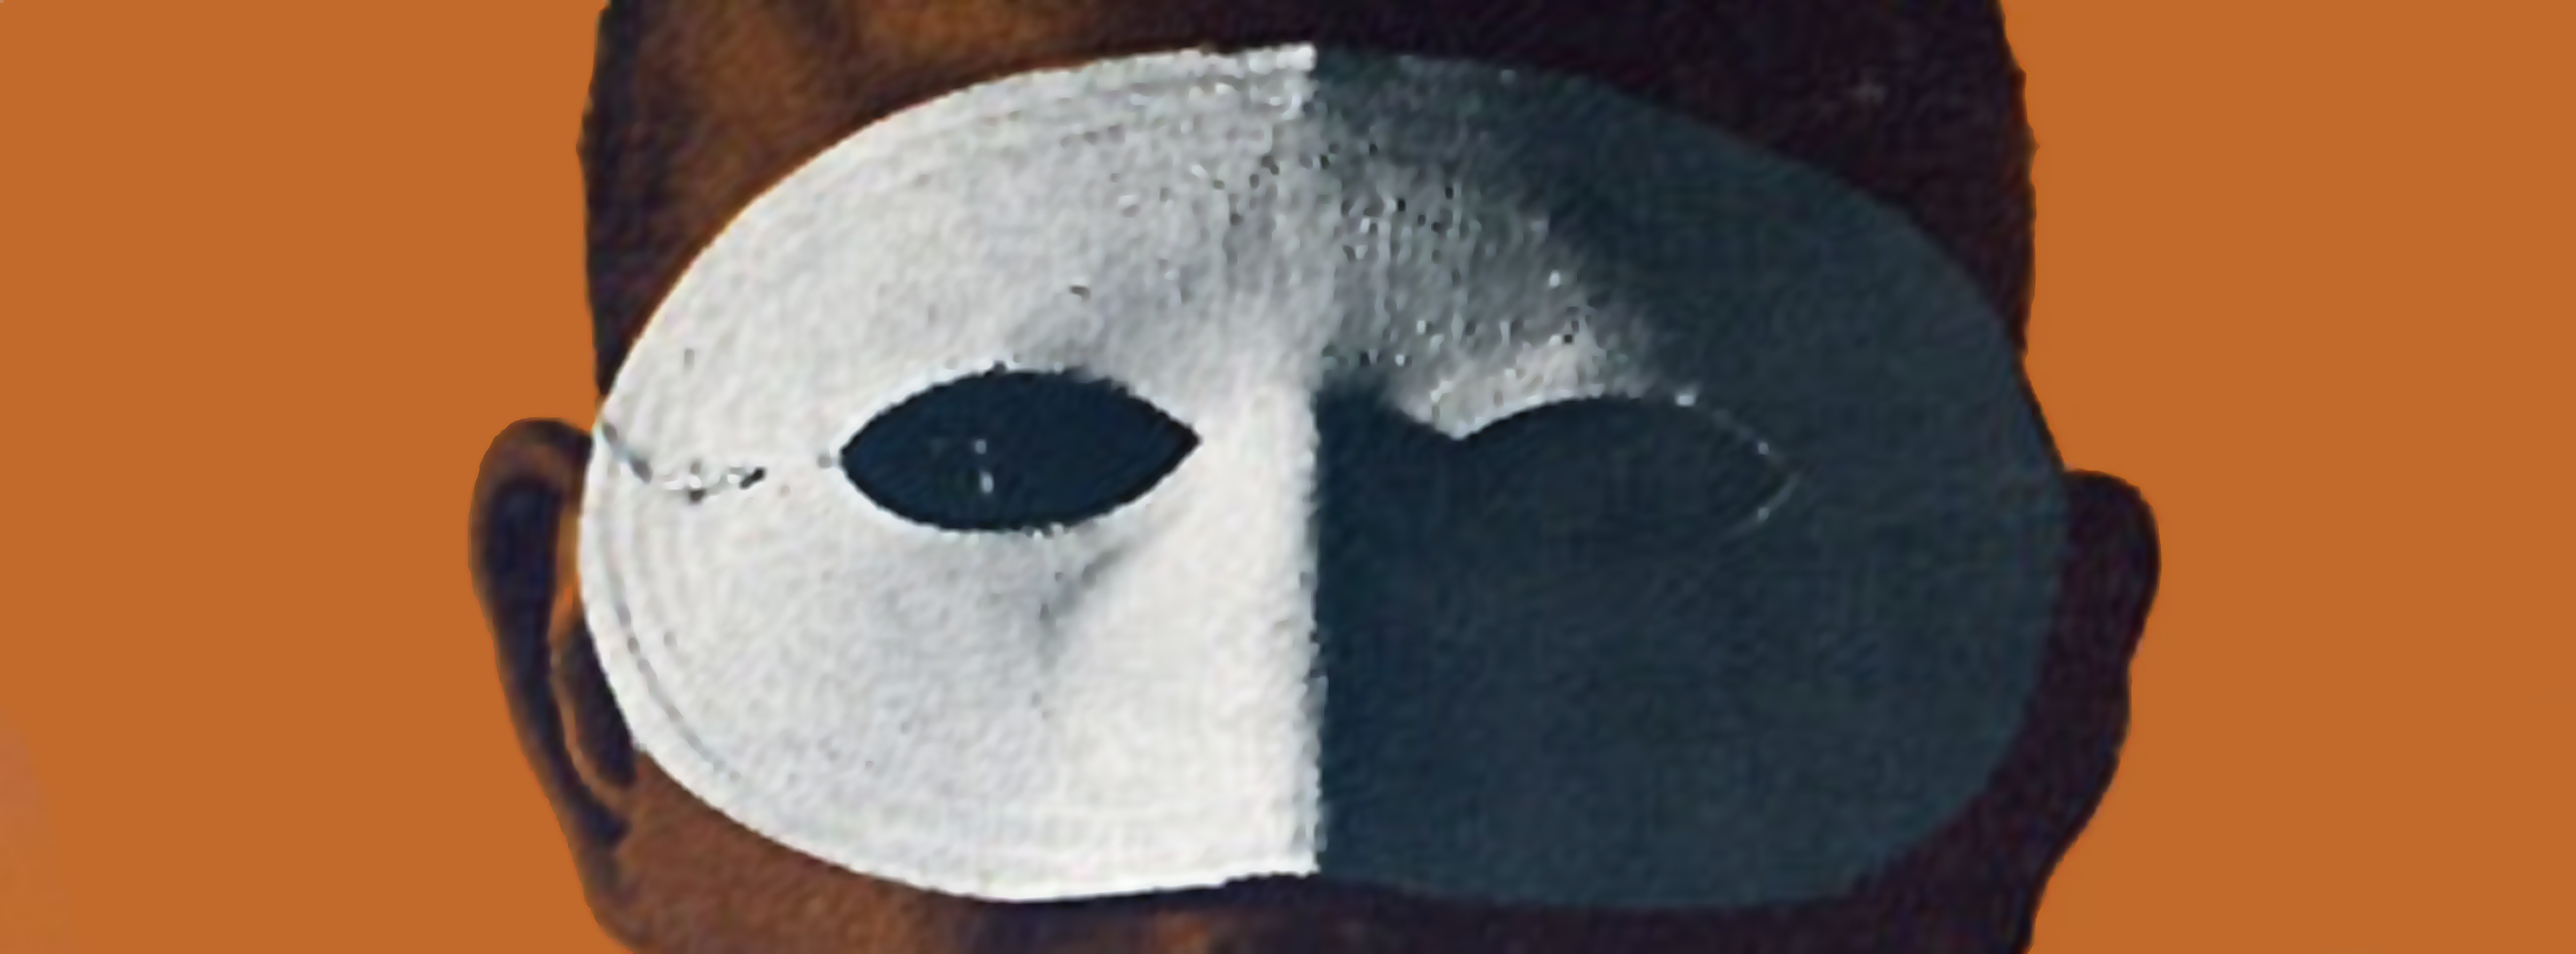 black skin white mask essay Frantz fanon: black skin, white mask explores for the first time on film the pre-eminent theorist of the anti-colonial movements of this century white masks (1952) originally titled an essay for the disalienation of blacks.